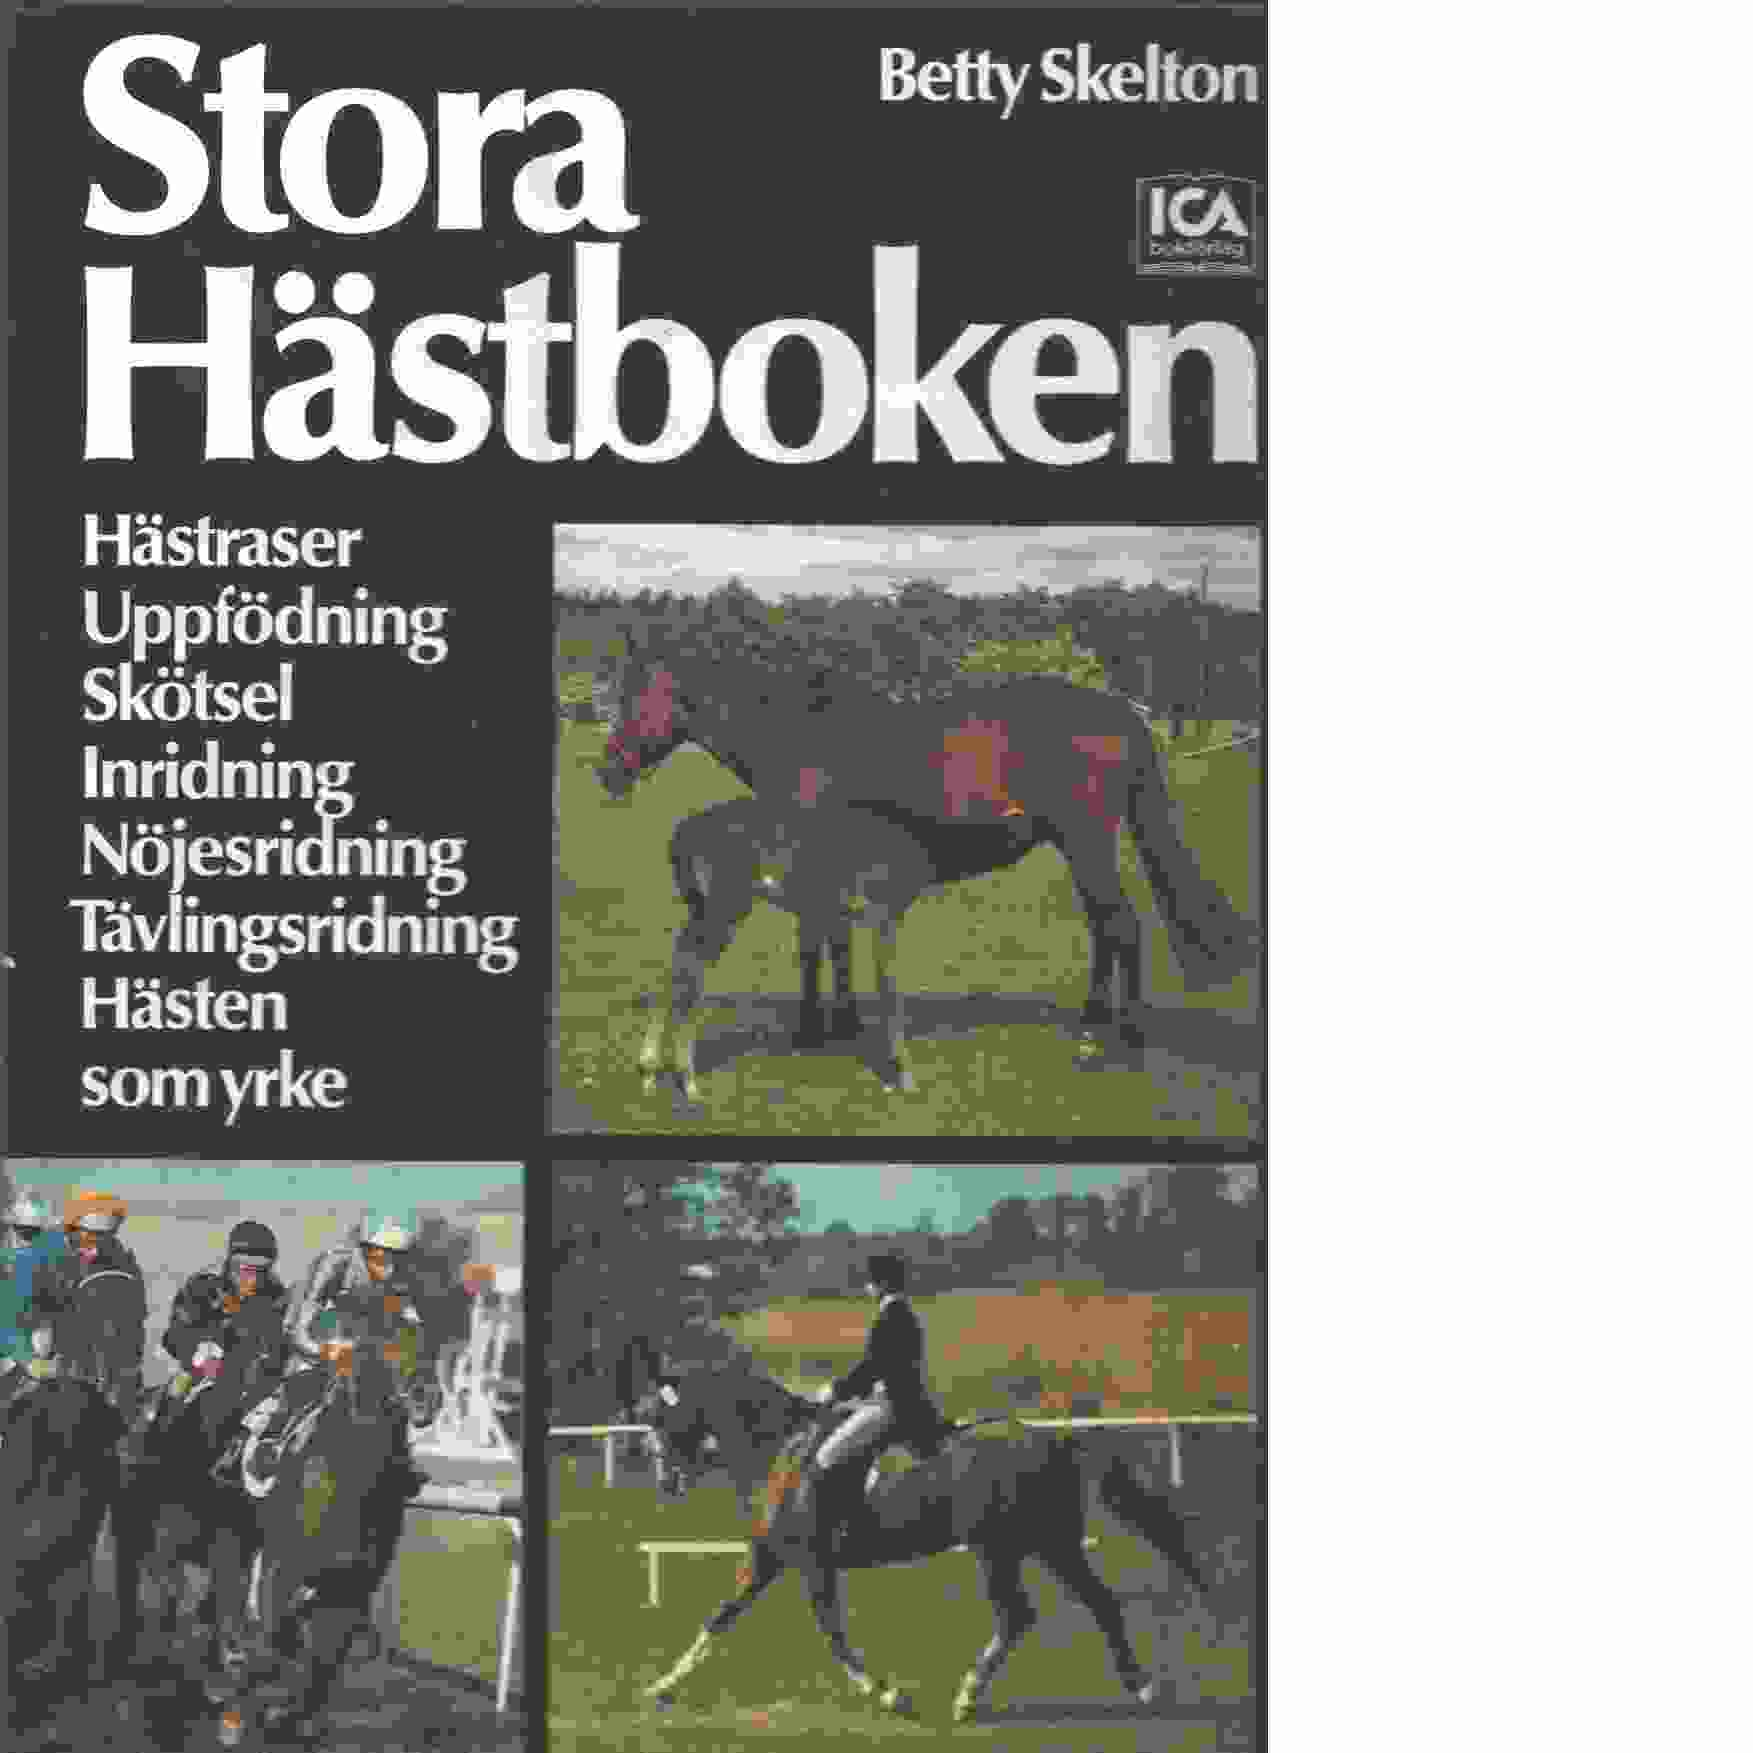 Stora hästboken - Skelton, Betty